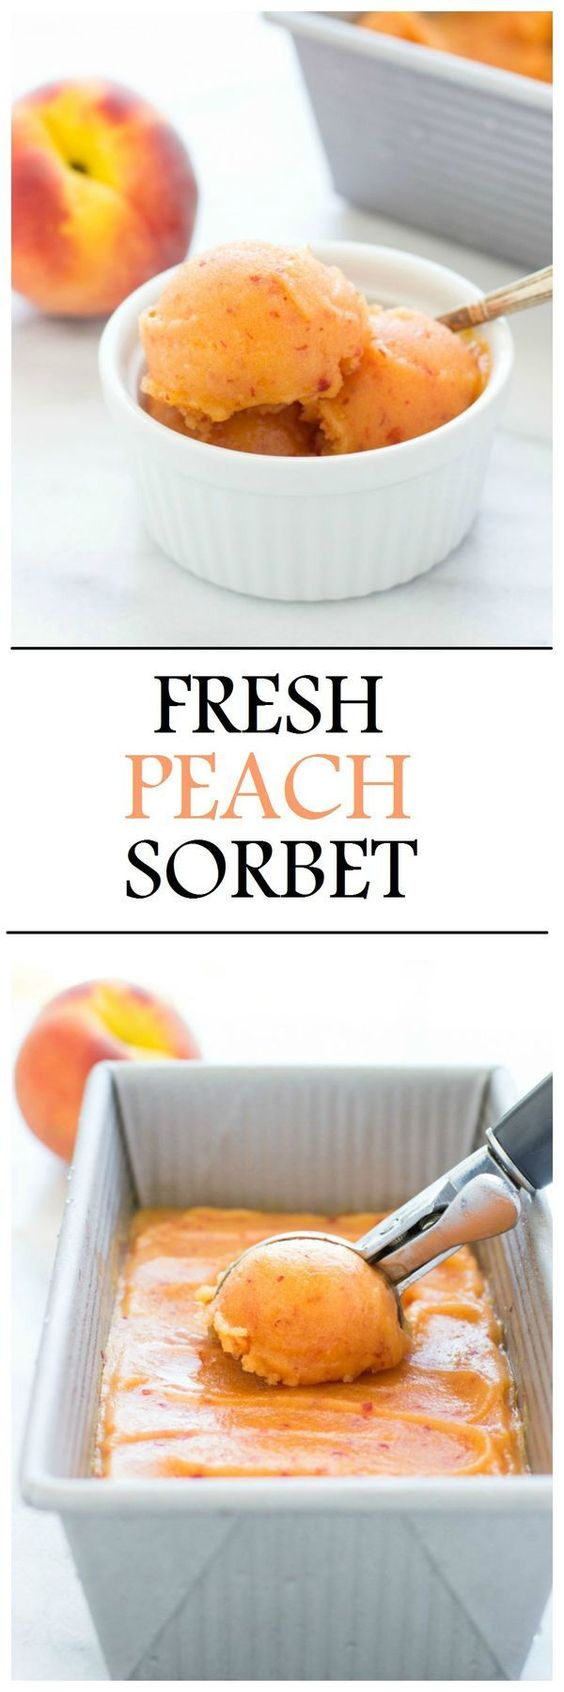 Peach sorbet, Peaches and Sorbet on Pinterest